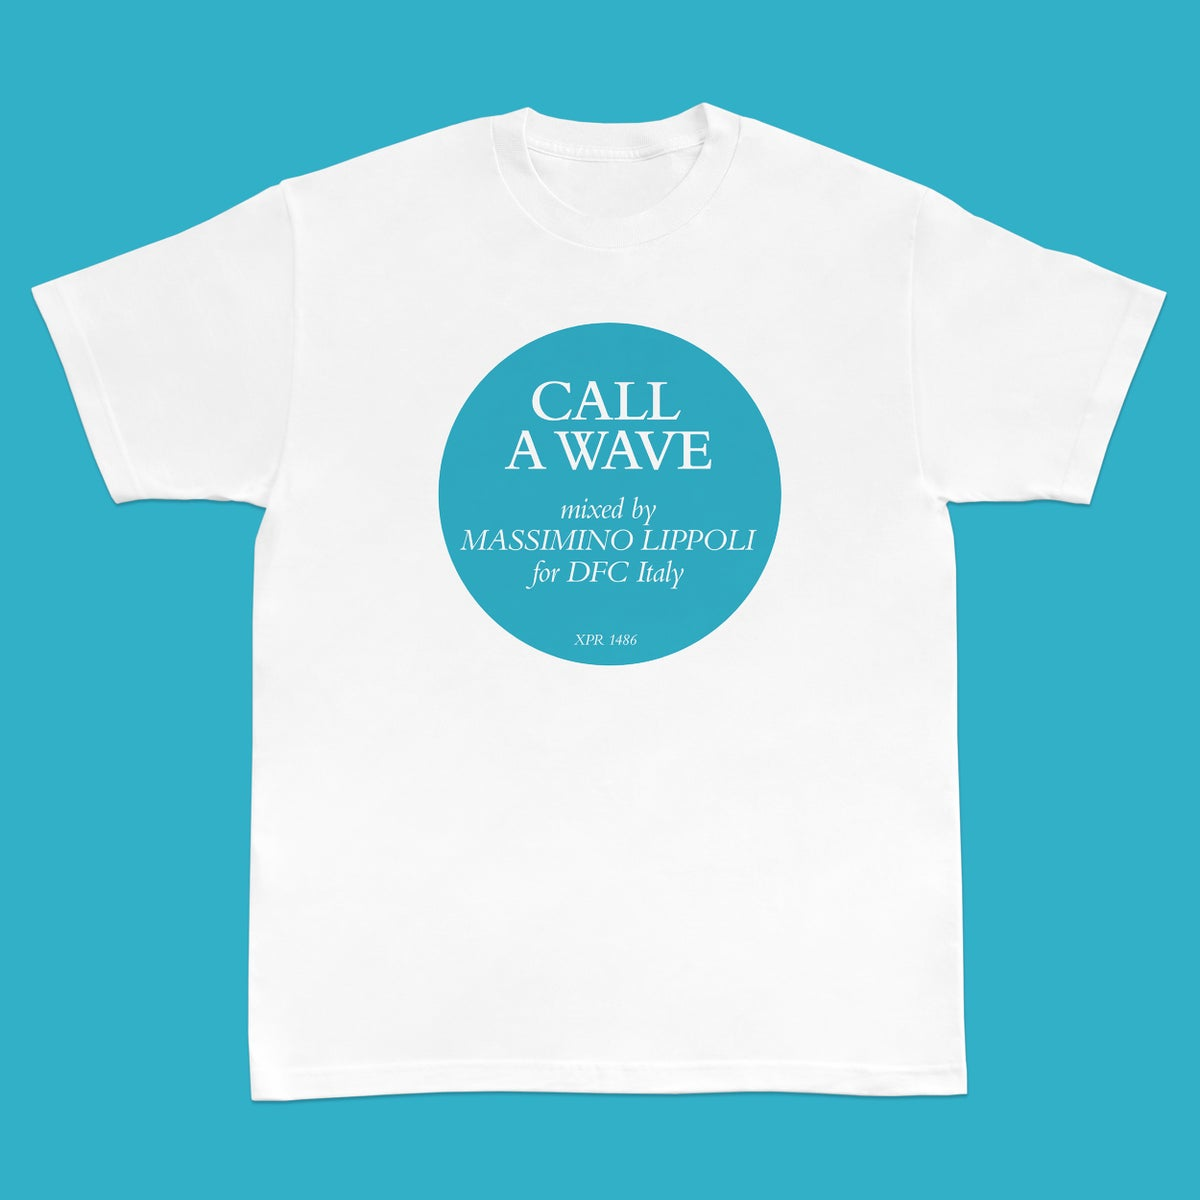 Image of Call A Wave T-Shirt